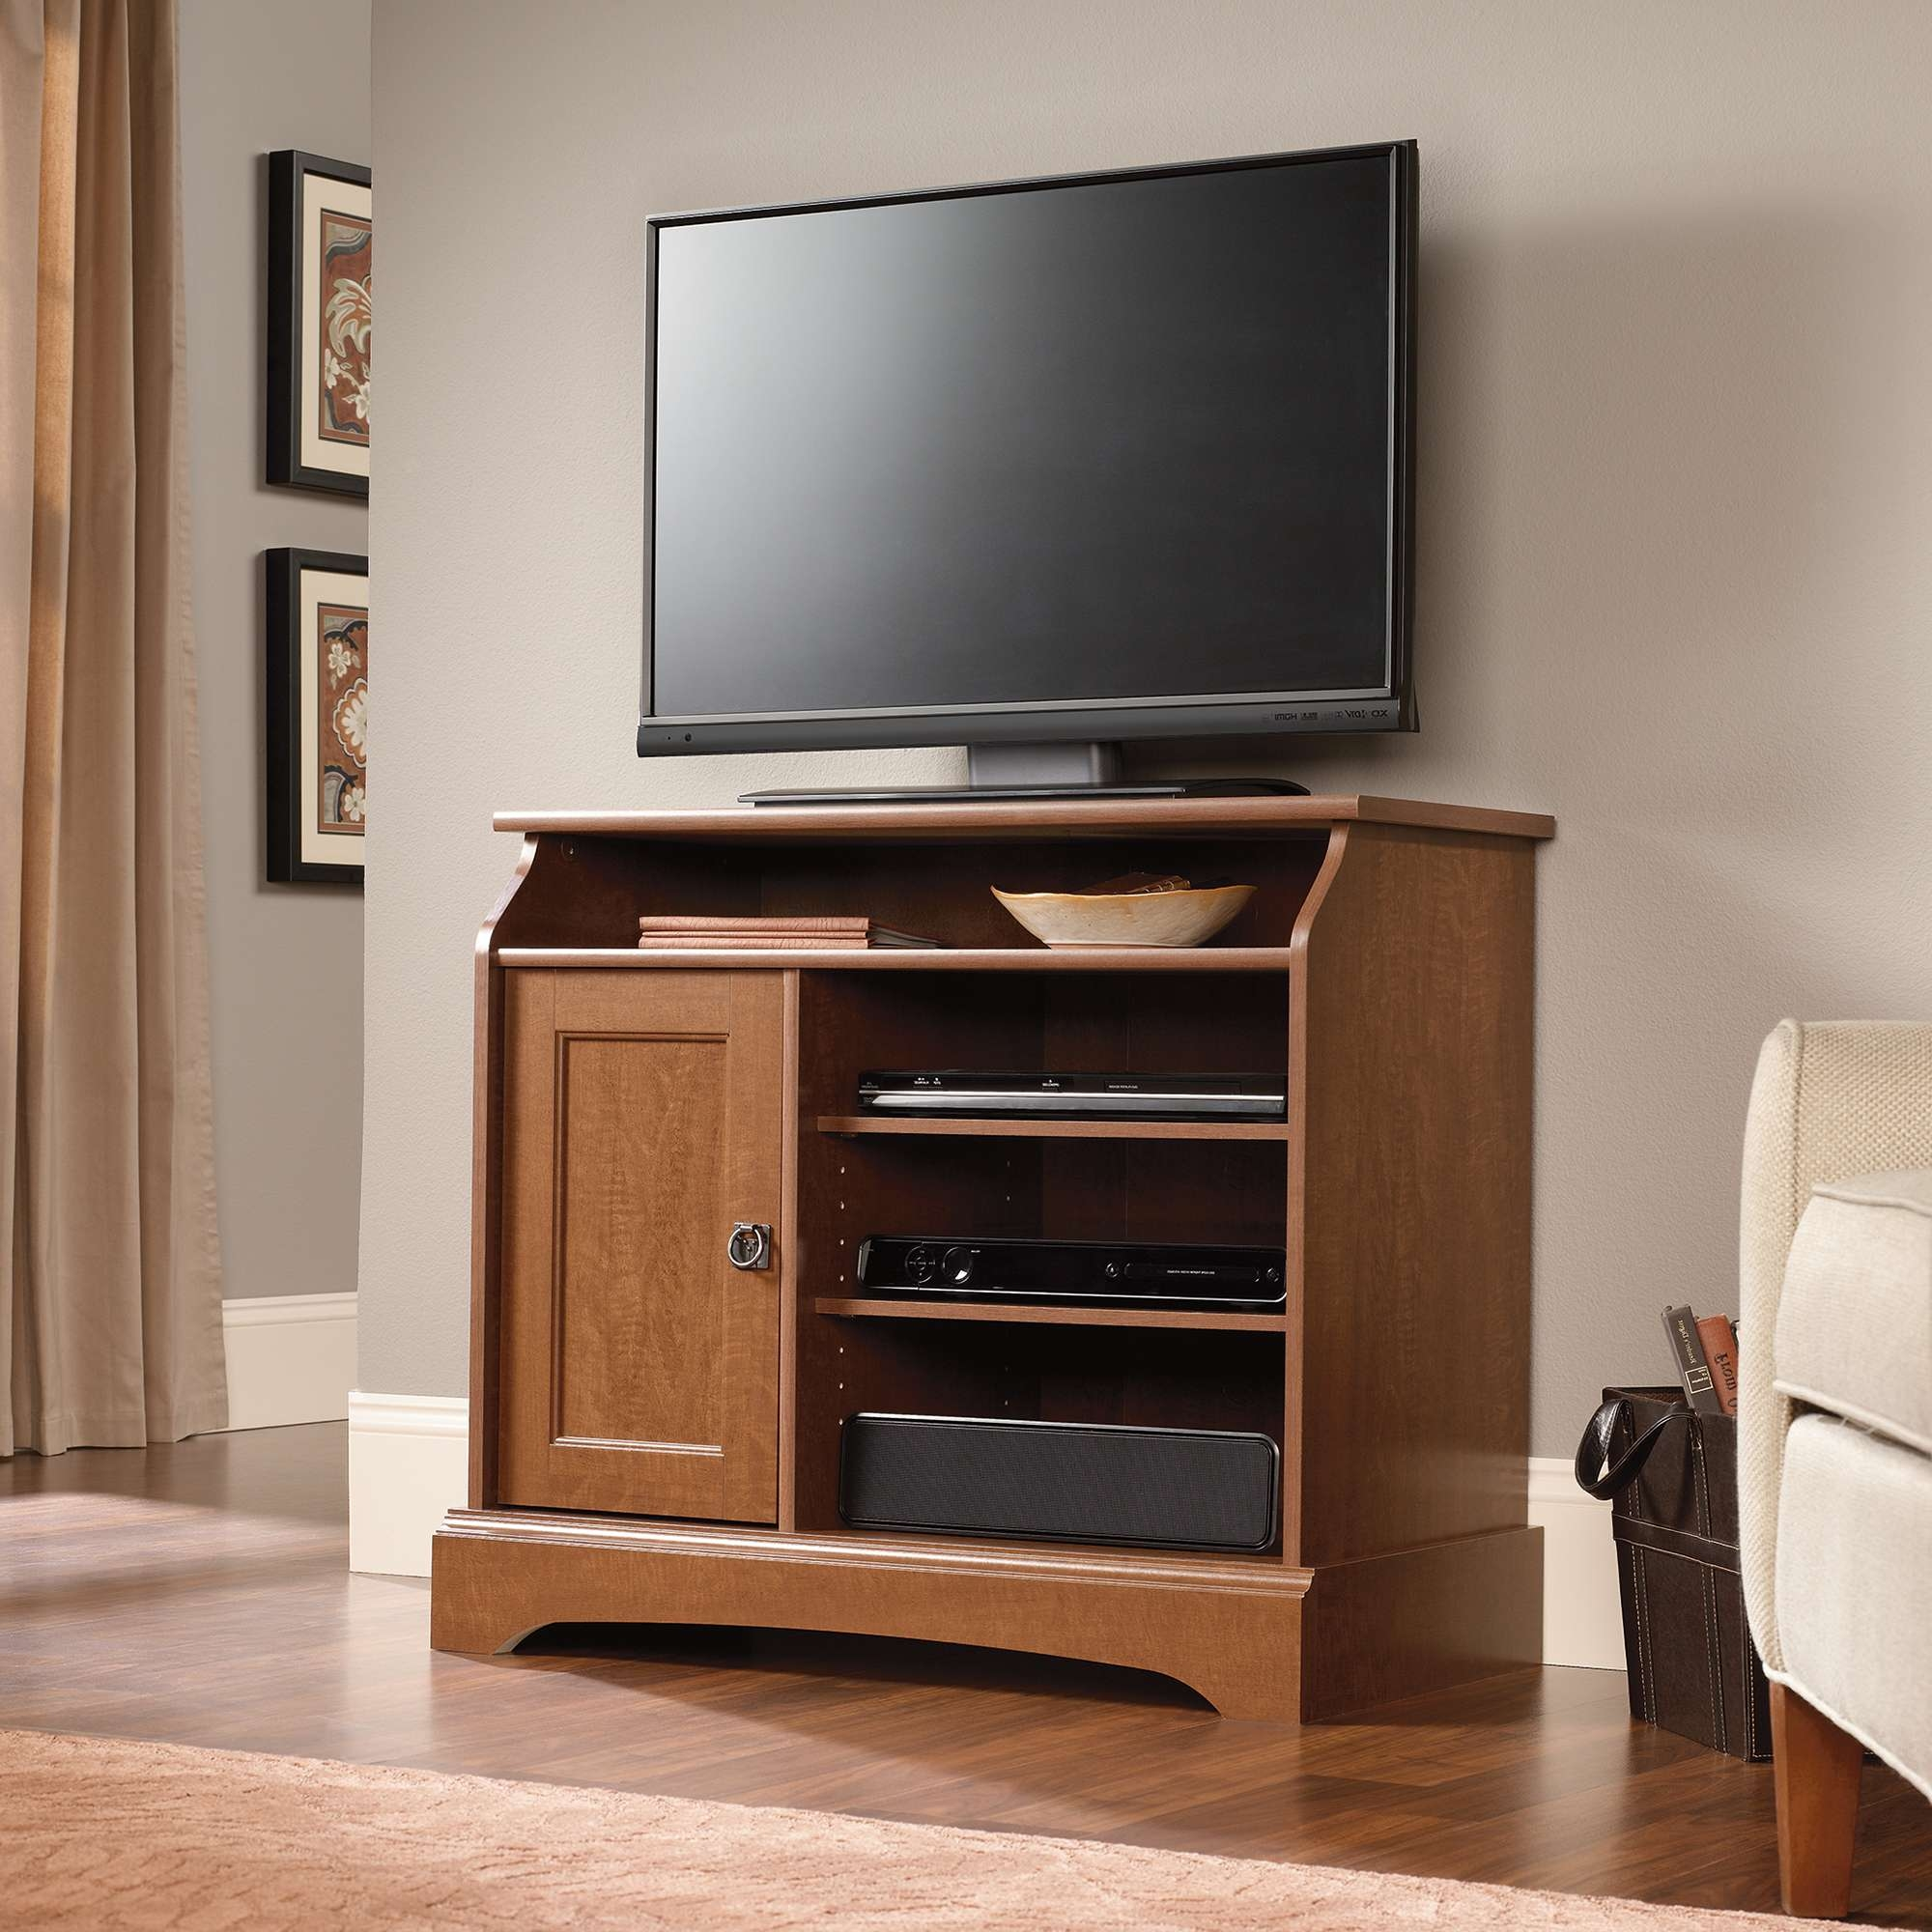 Sauder Select | Highboy Tv Stand | 408972 | Sauder With Regard To Maple Tv Cabinets (View 14 of 20)